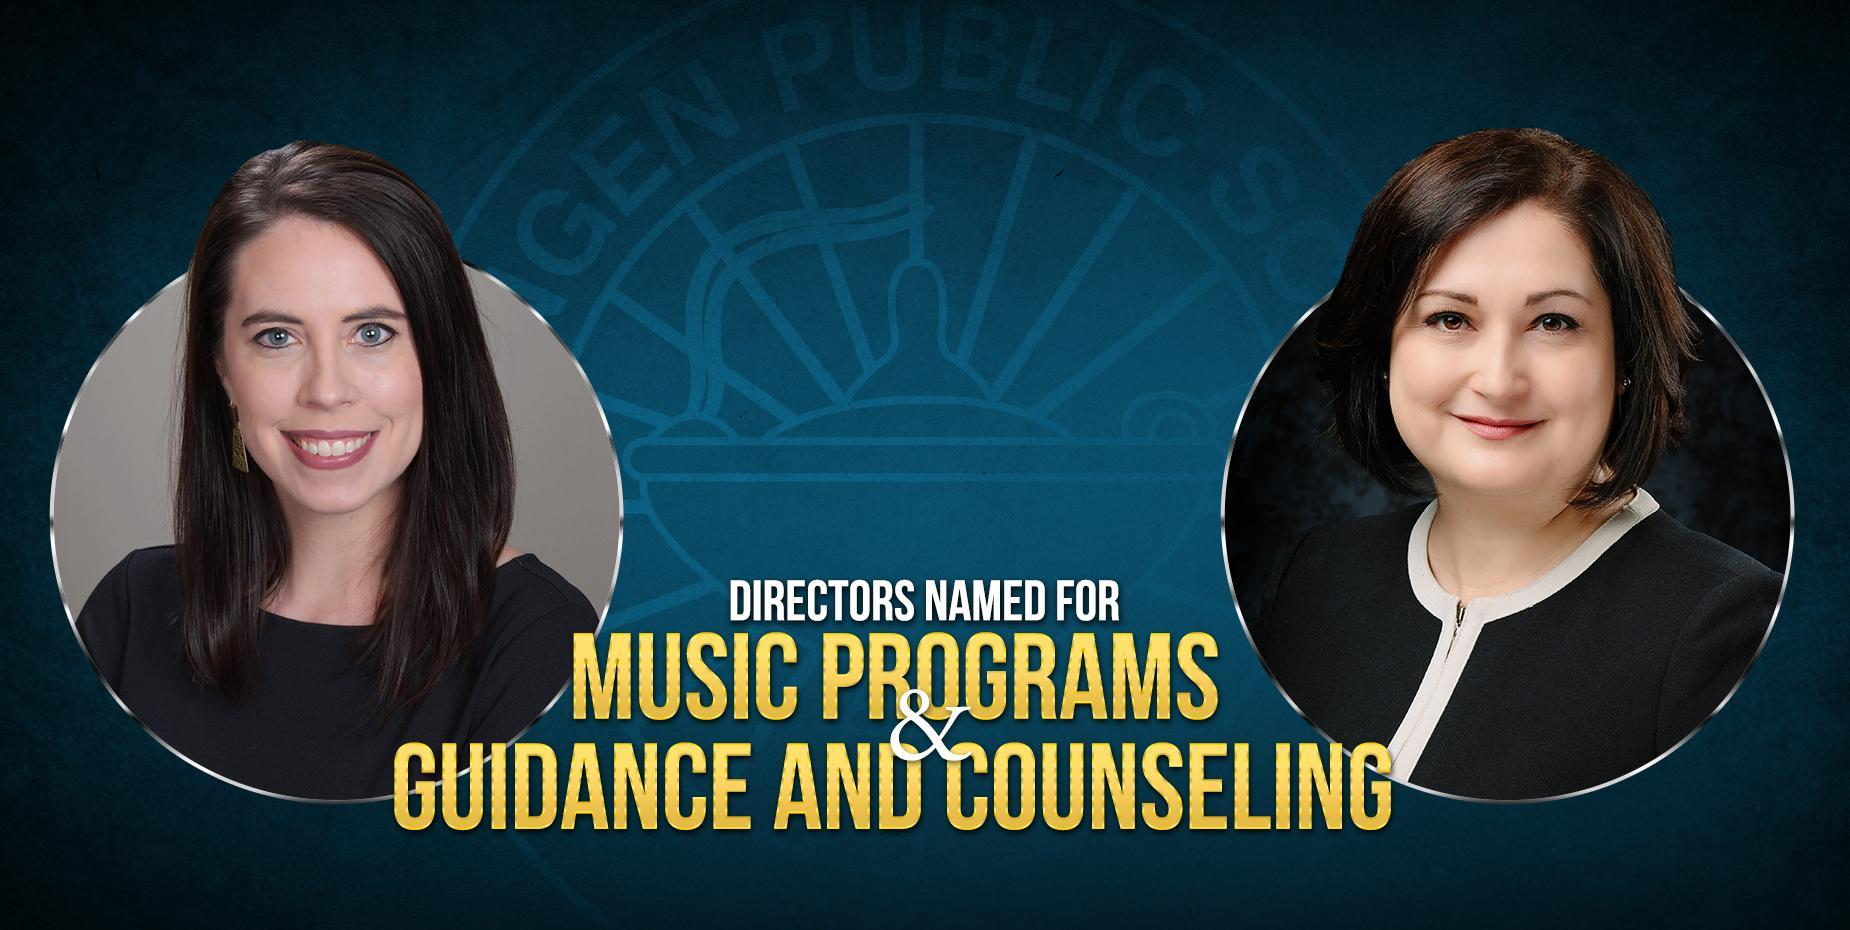 Directors named for Music Programs and Guidance and Counseling